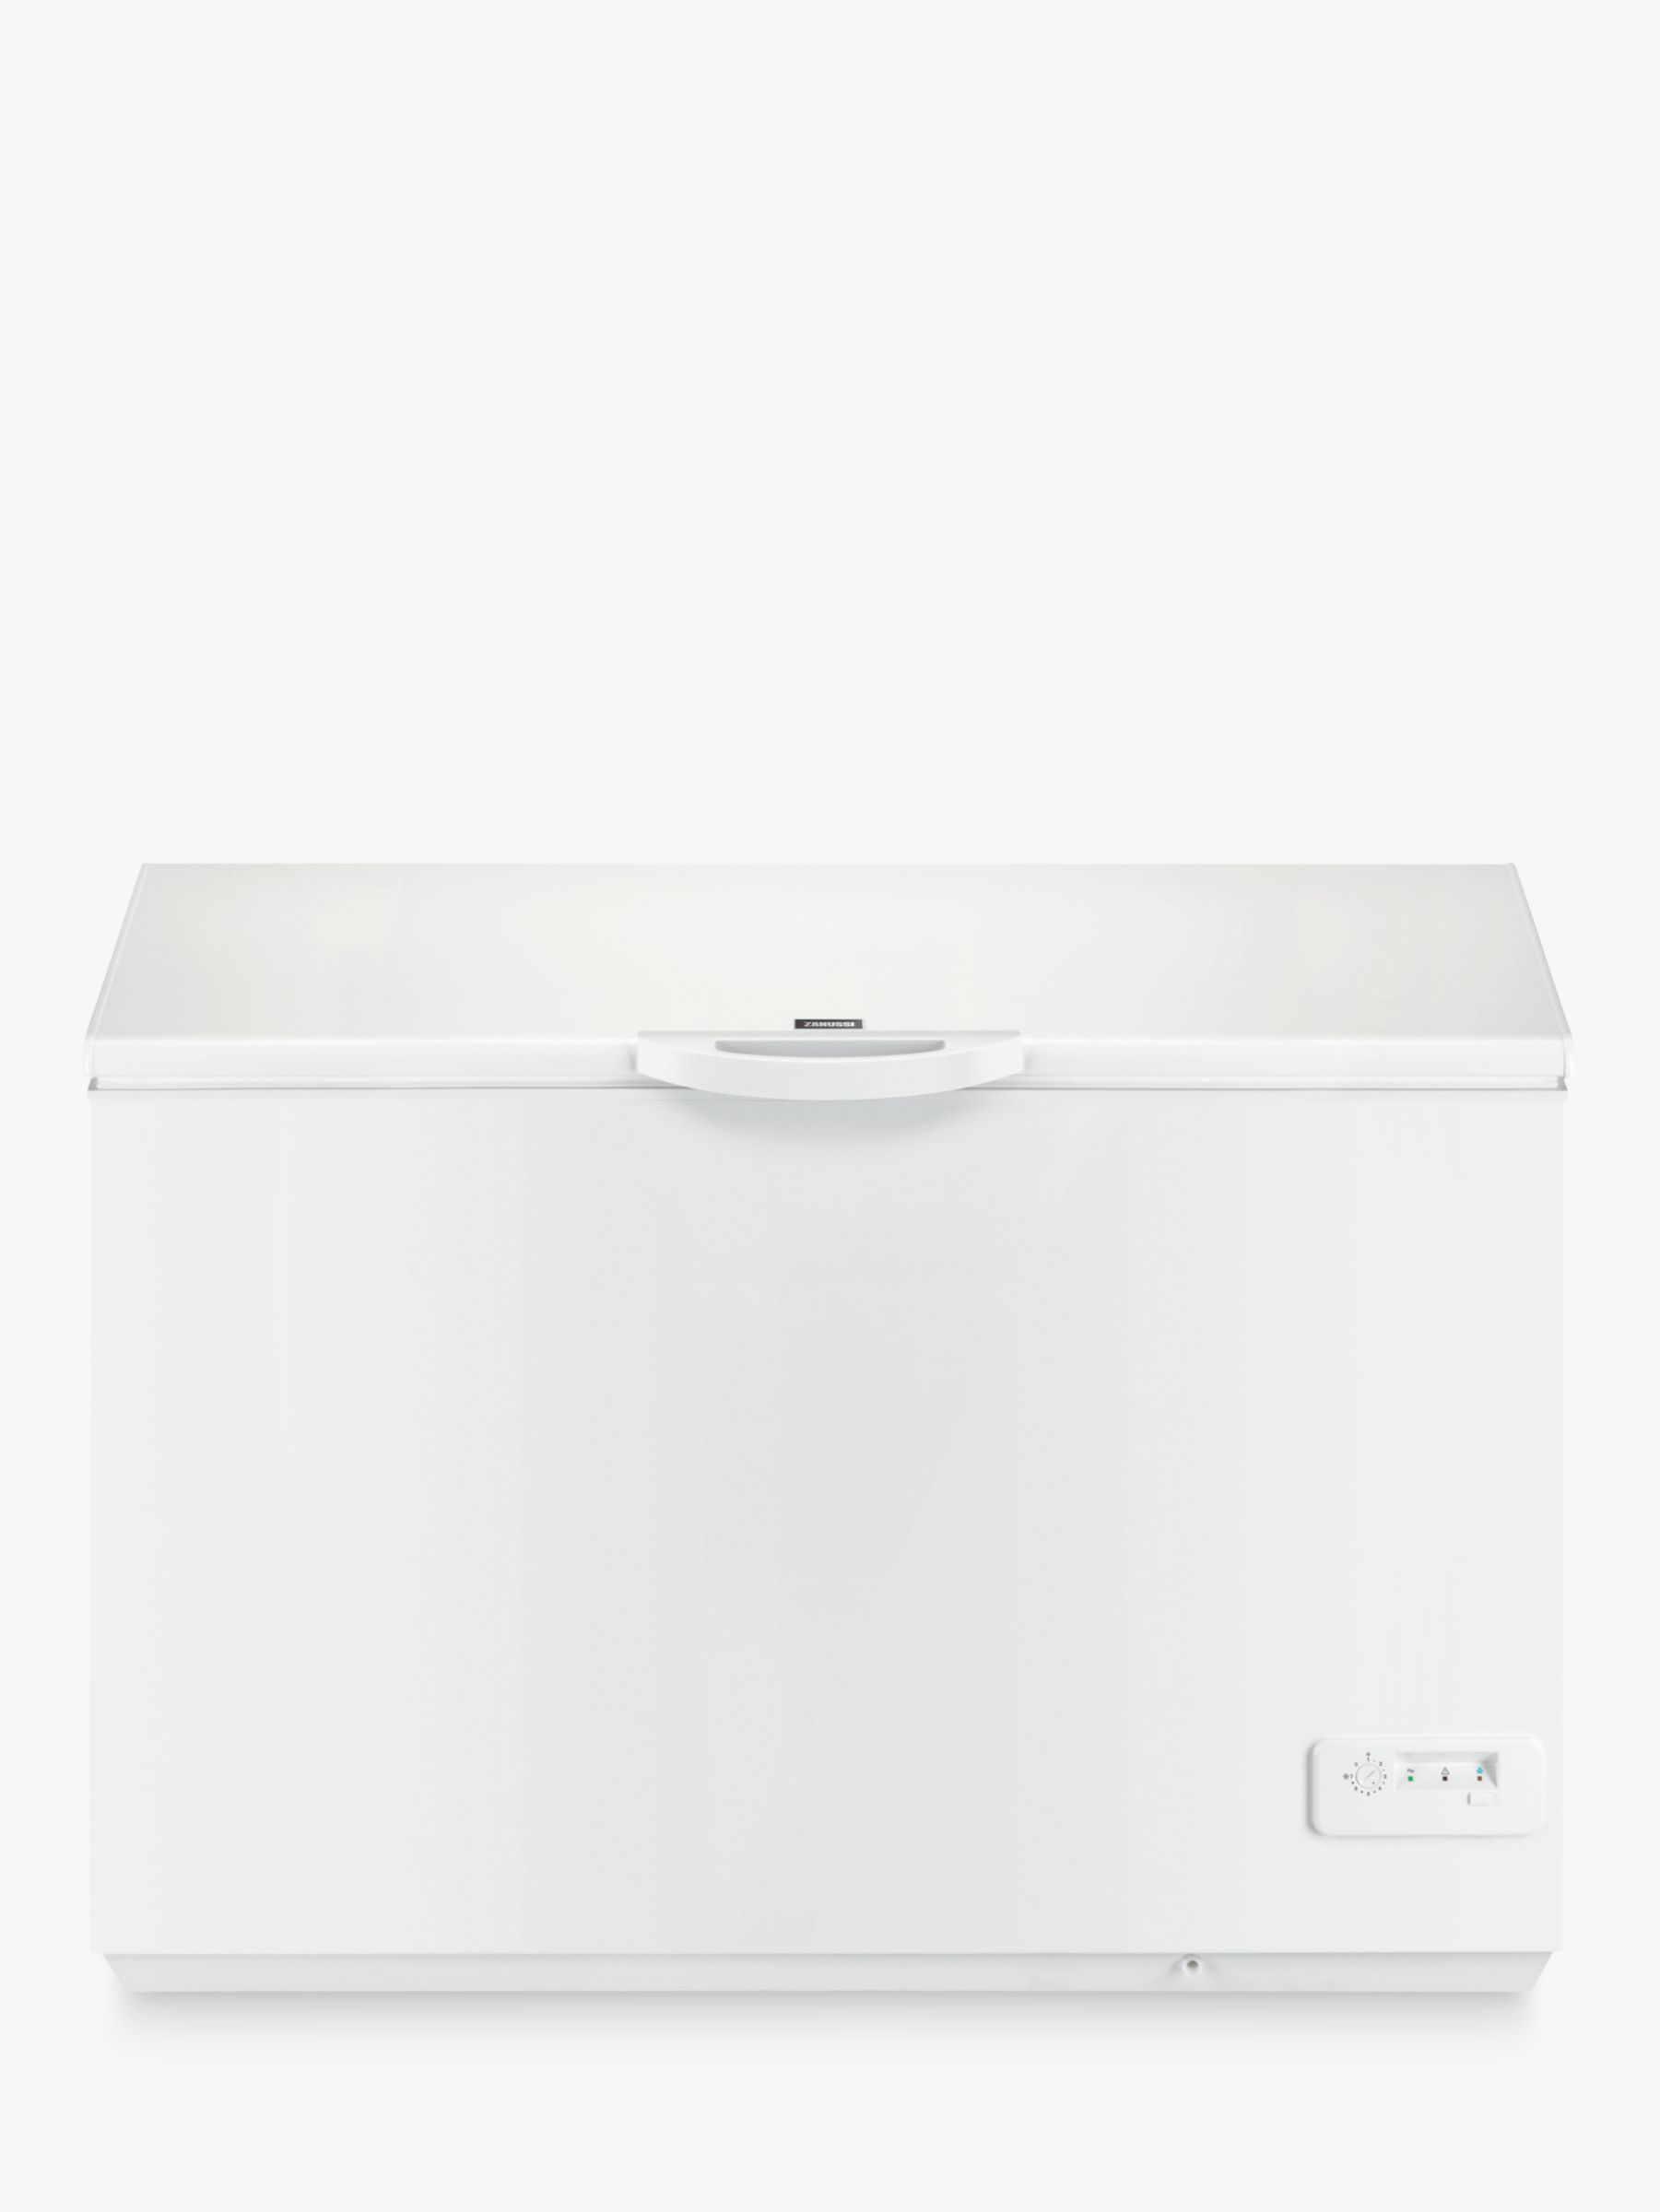 Zanussi Zanussi ZFC41400WA Chest Freezer, A+ Energy Rating, 133cm Wide, White